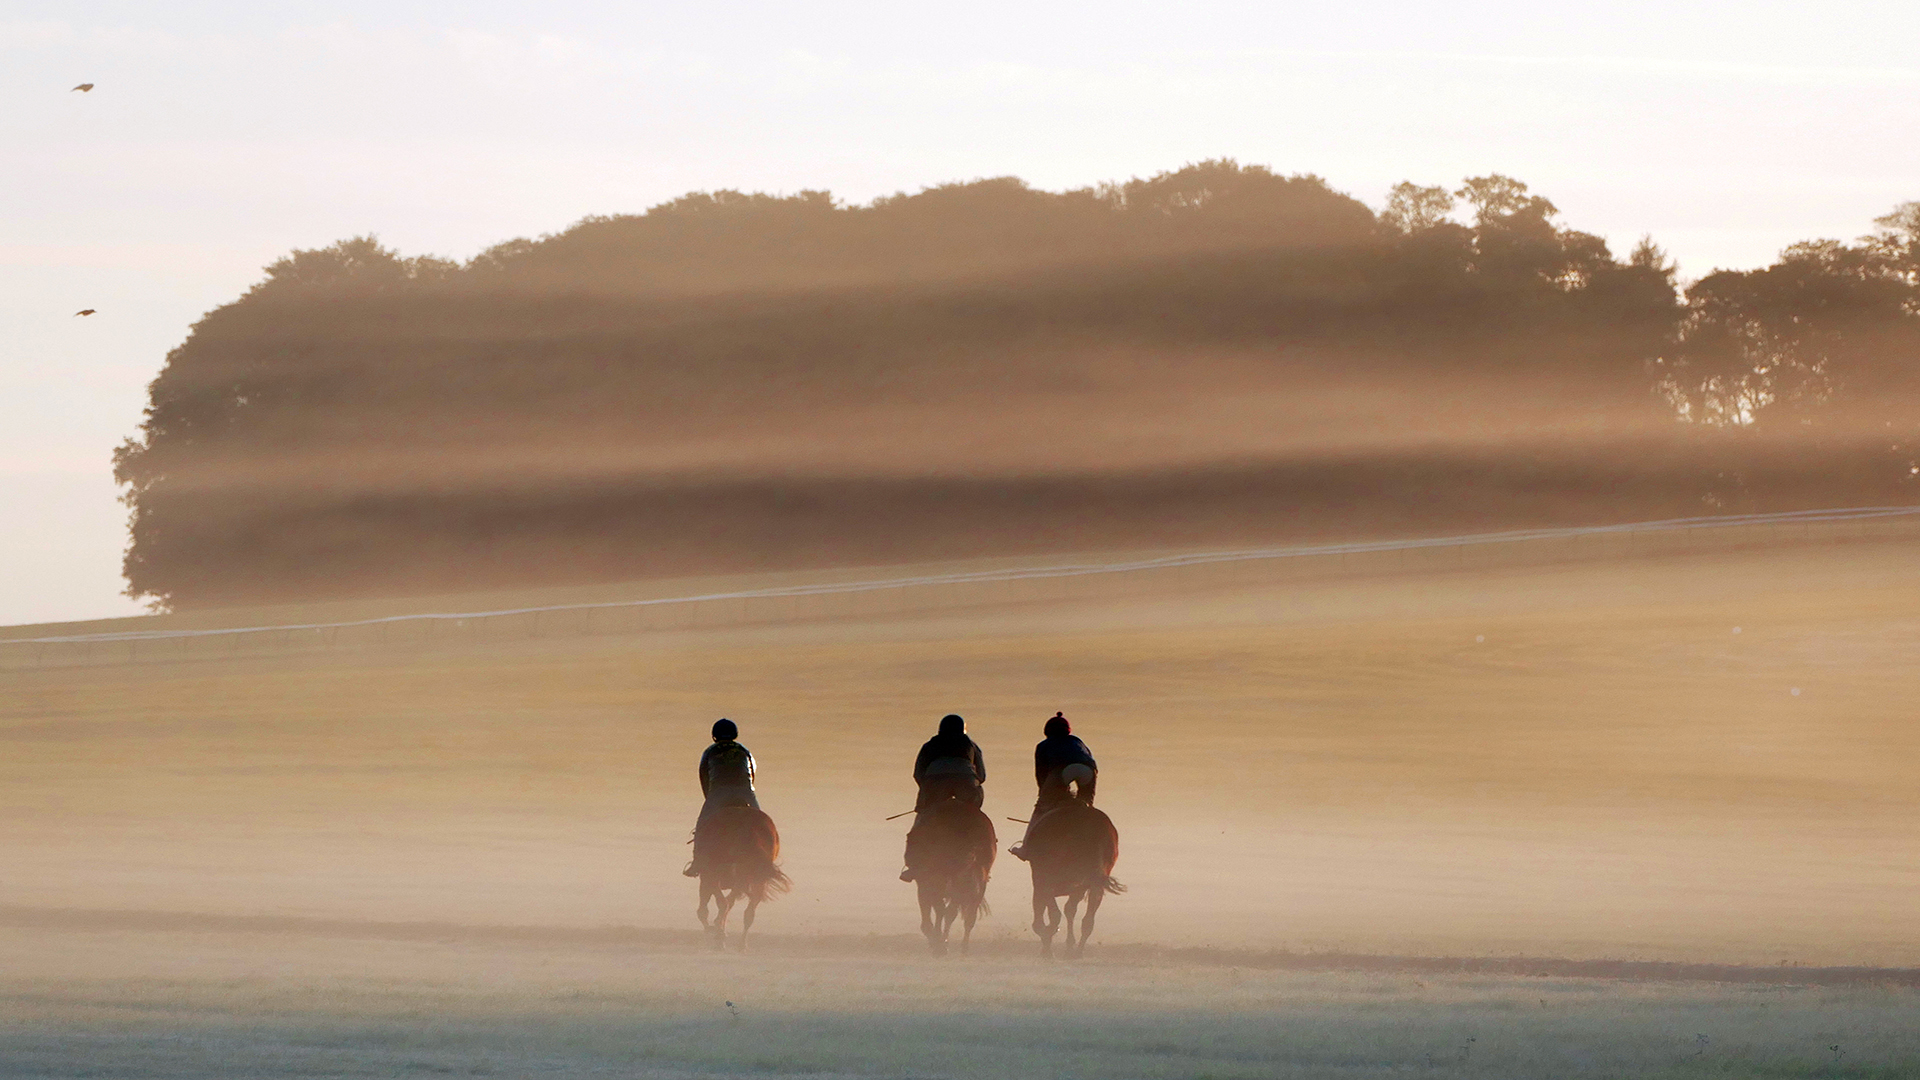 Newmarket: A Place of Wonder for the Racehorse